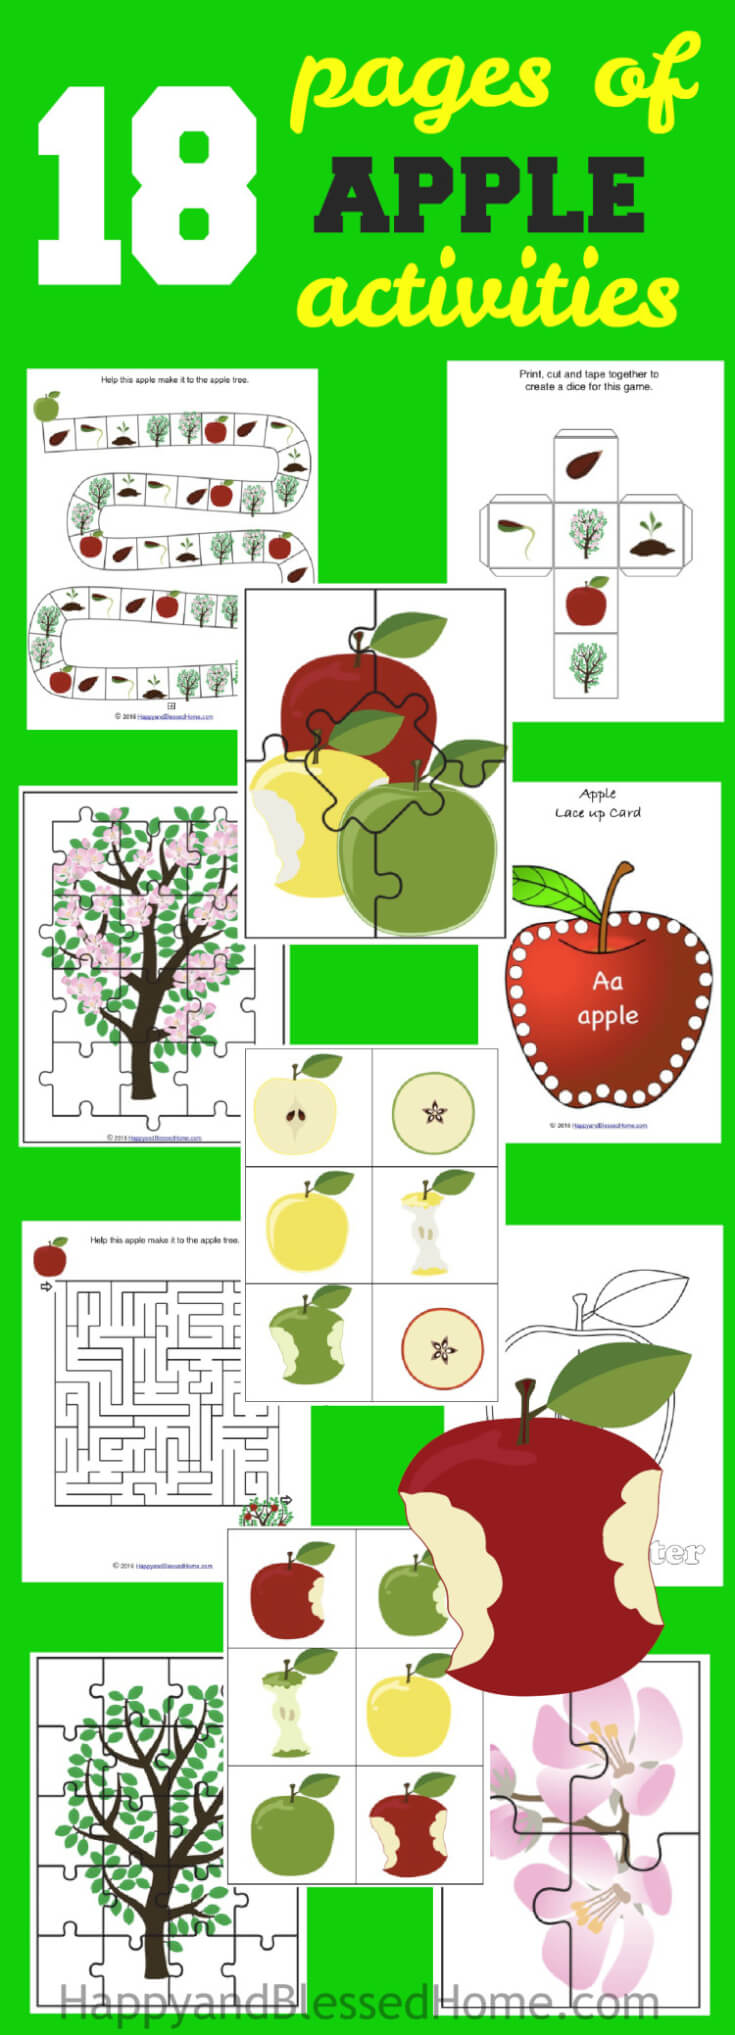 Apple Activity Pack from HappyandBlessedHome.com